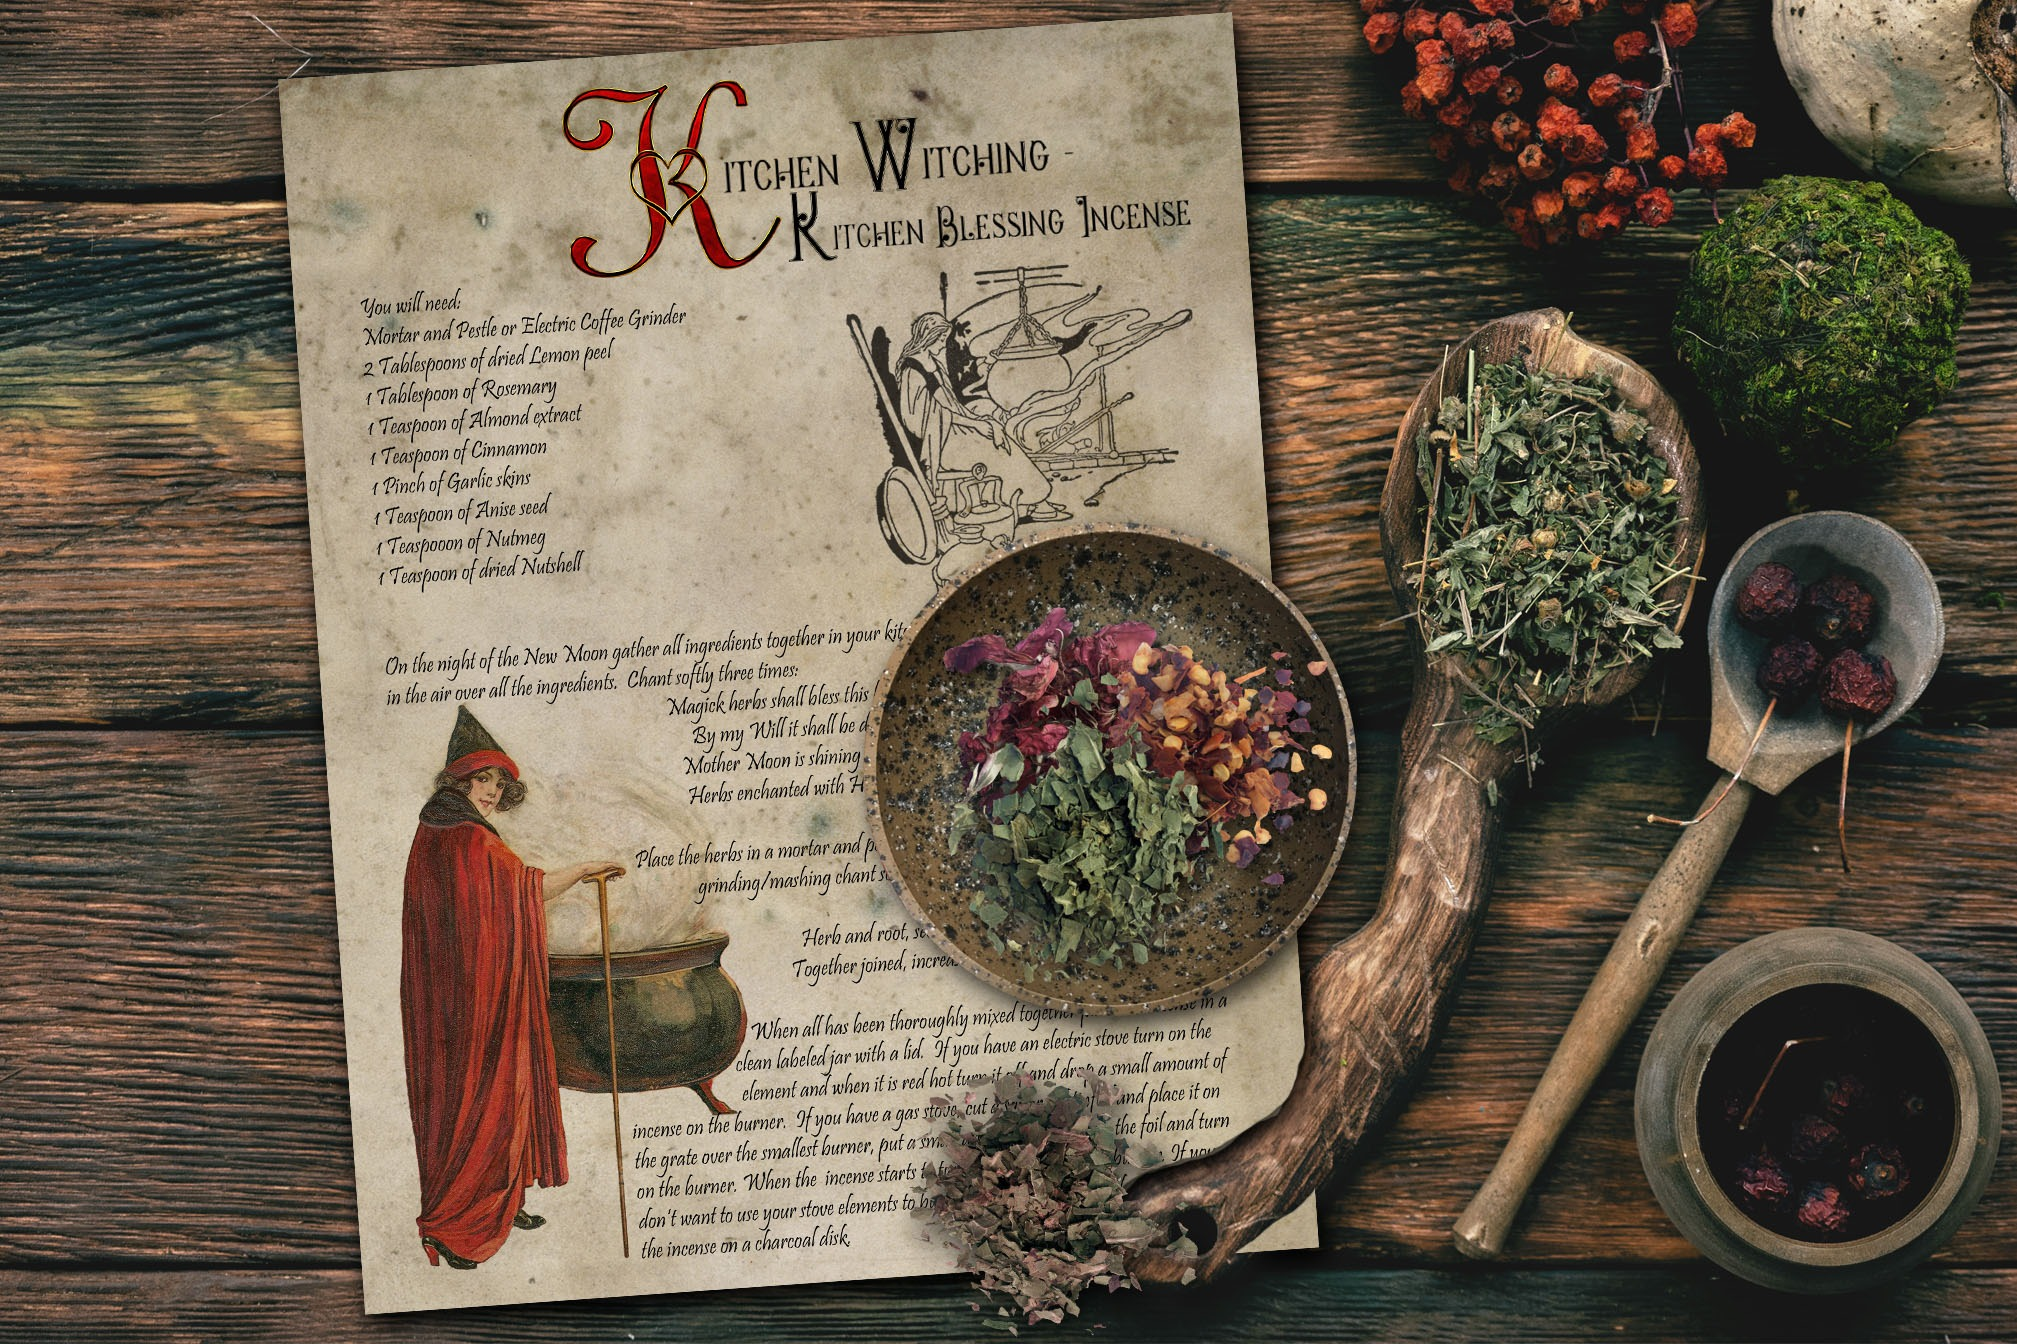 KITCHEN WITCHING - Kitchen Blessing Incense